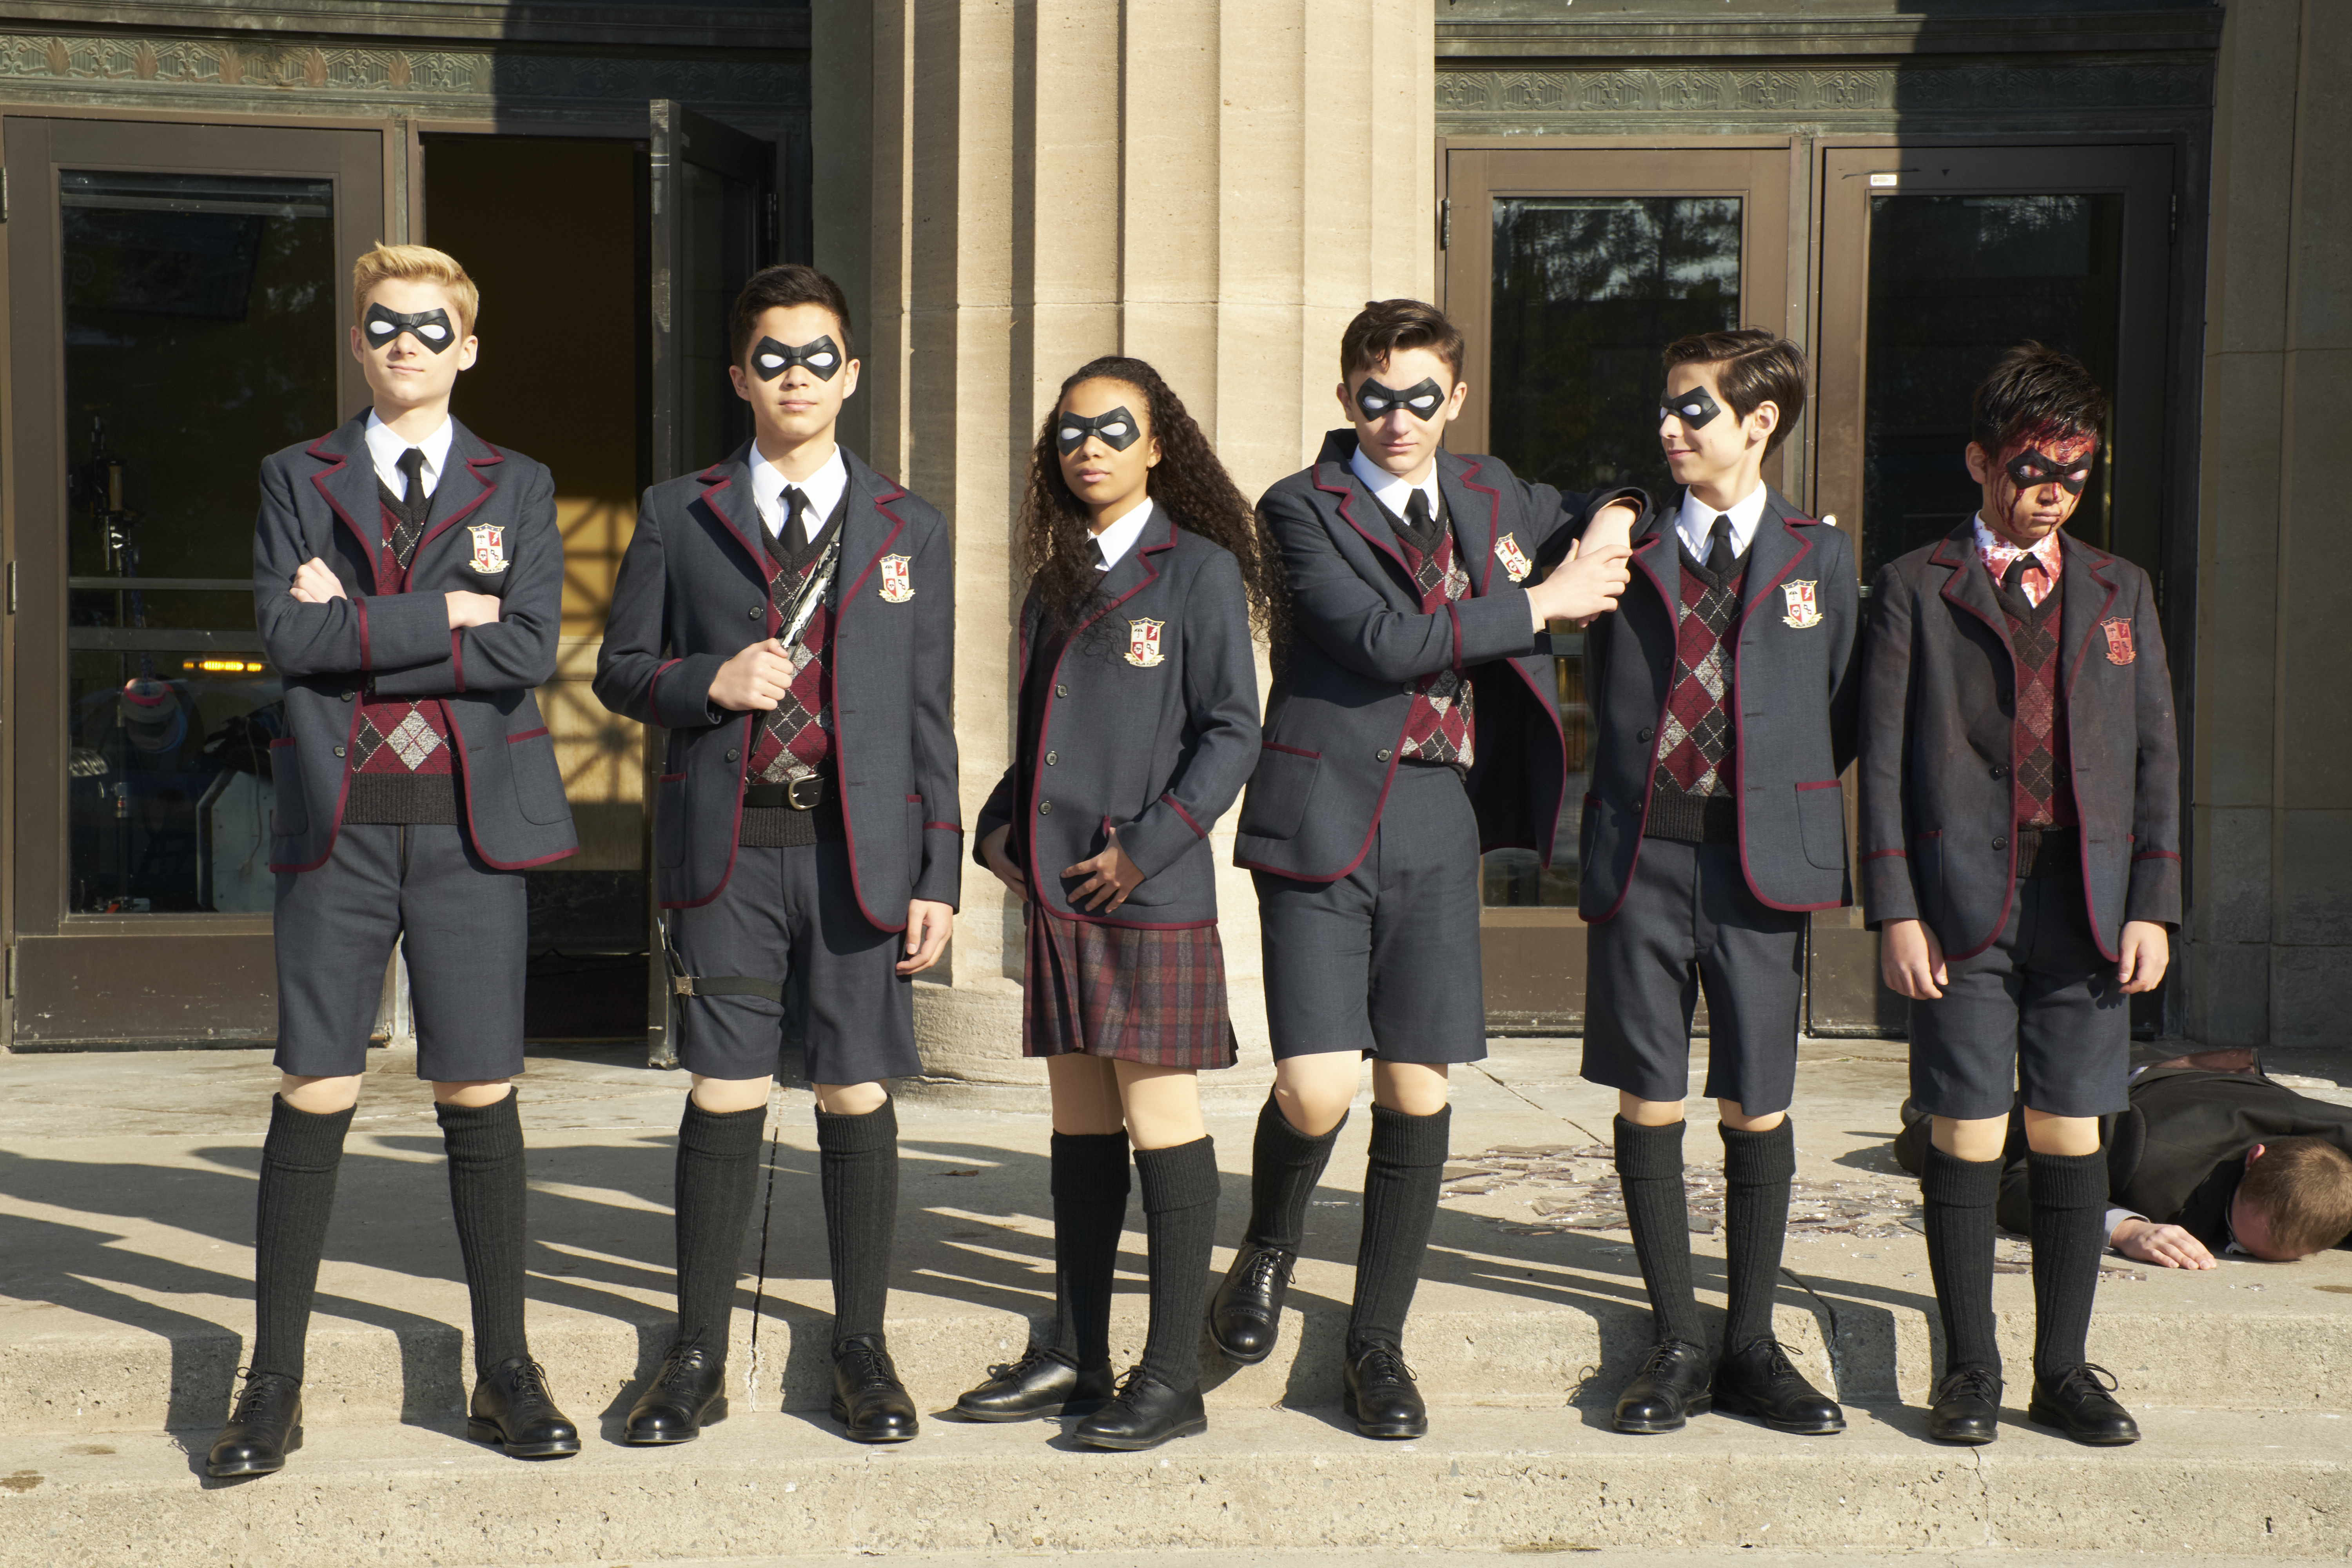 The Umbrella Academy: Live-Action Superhero Series Trailer and